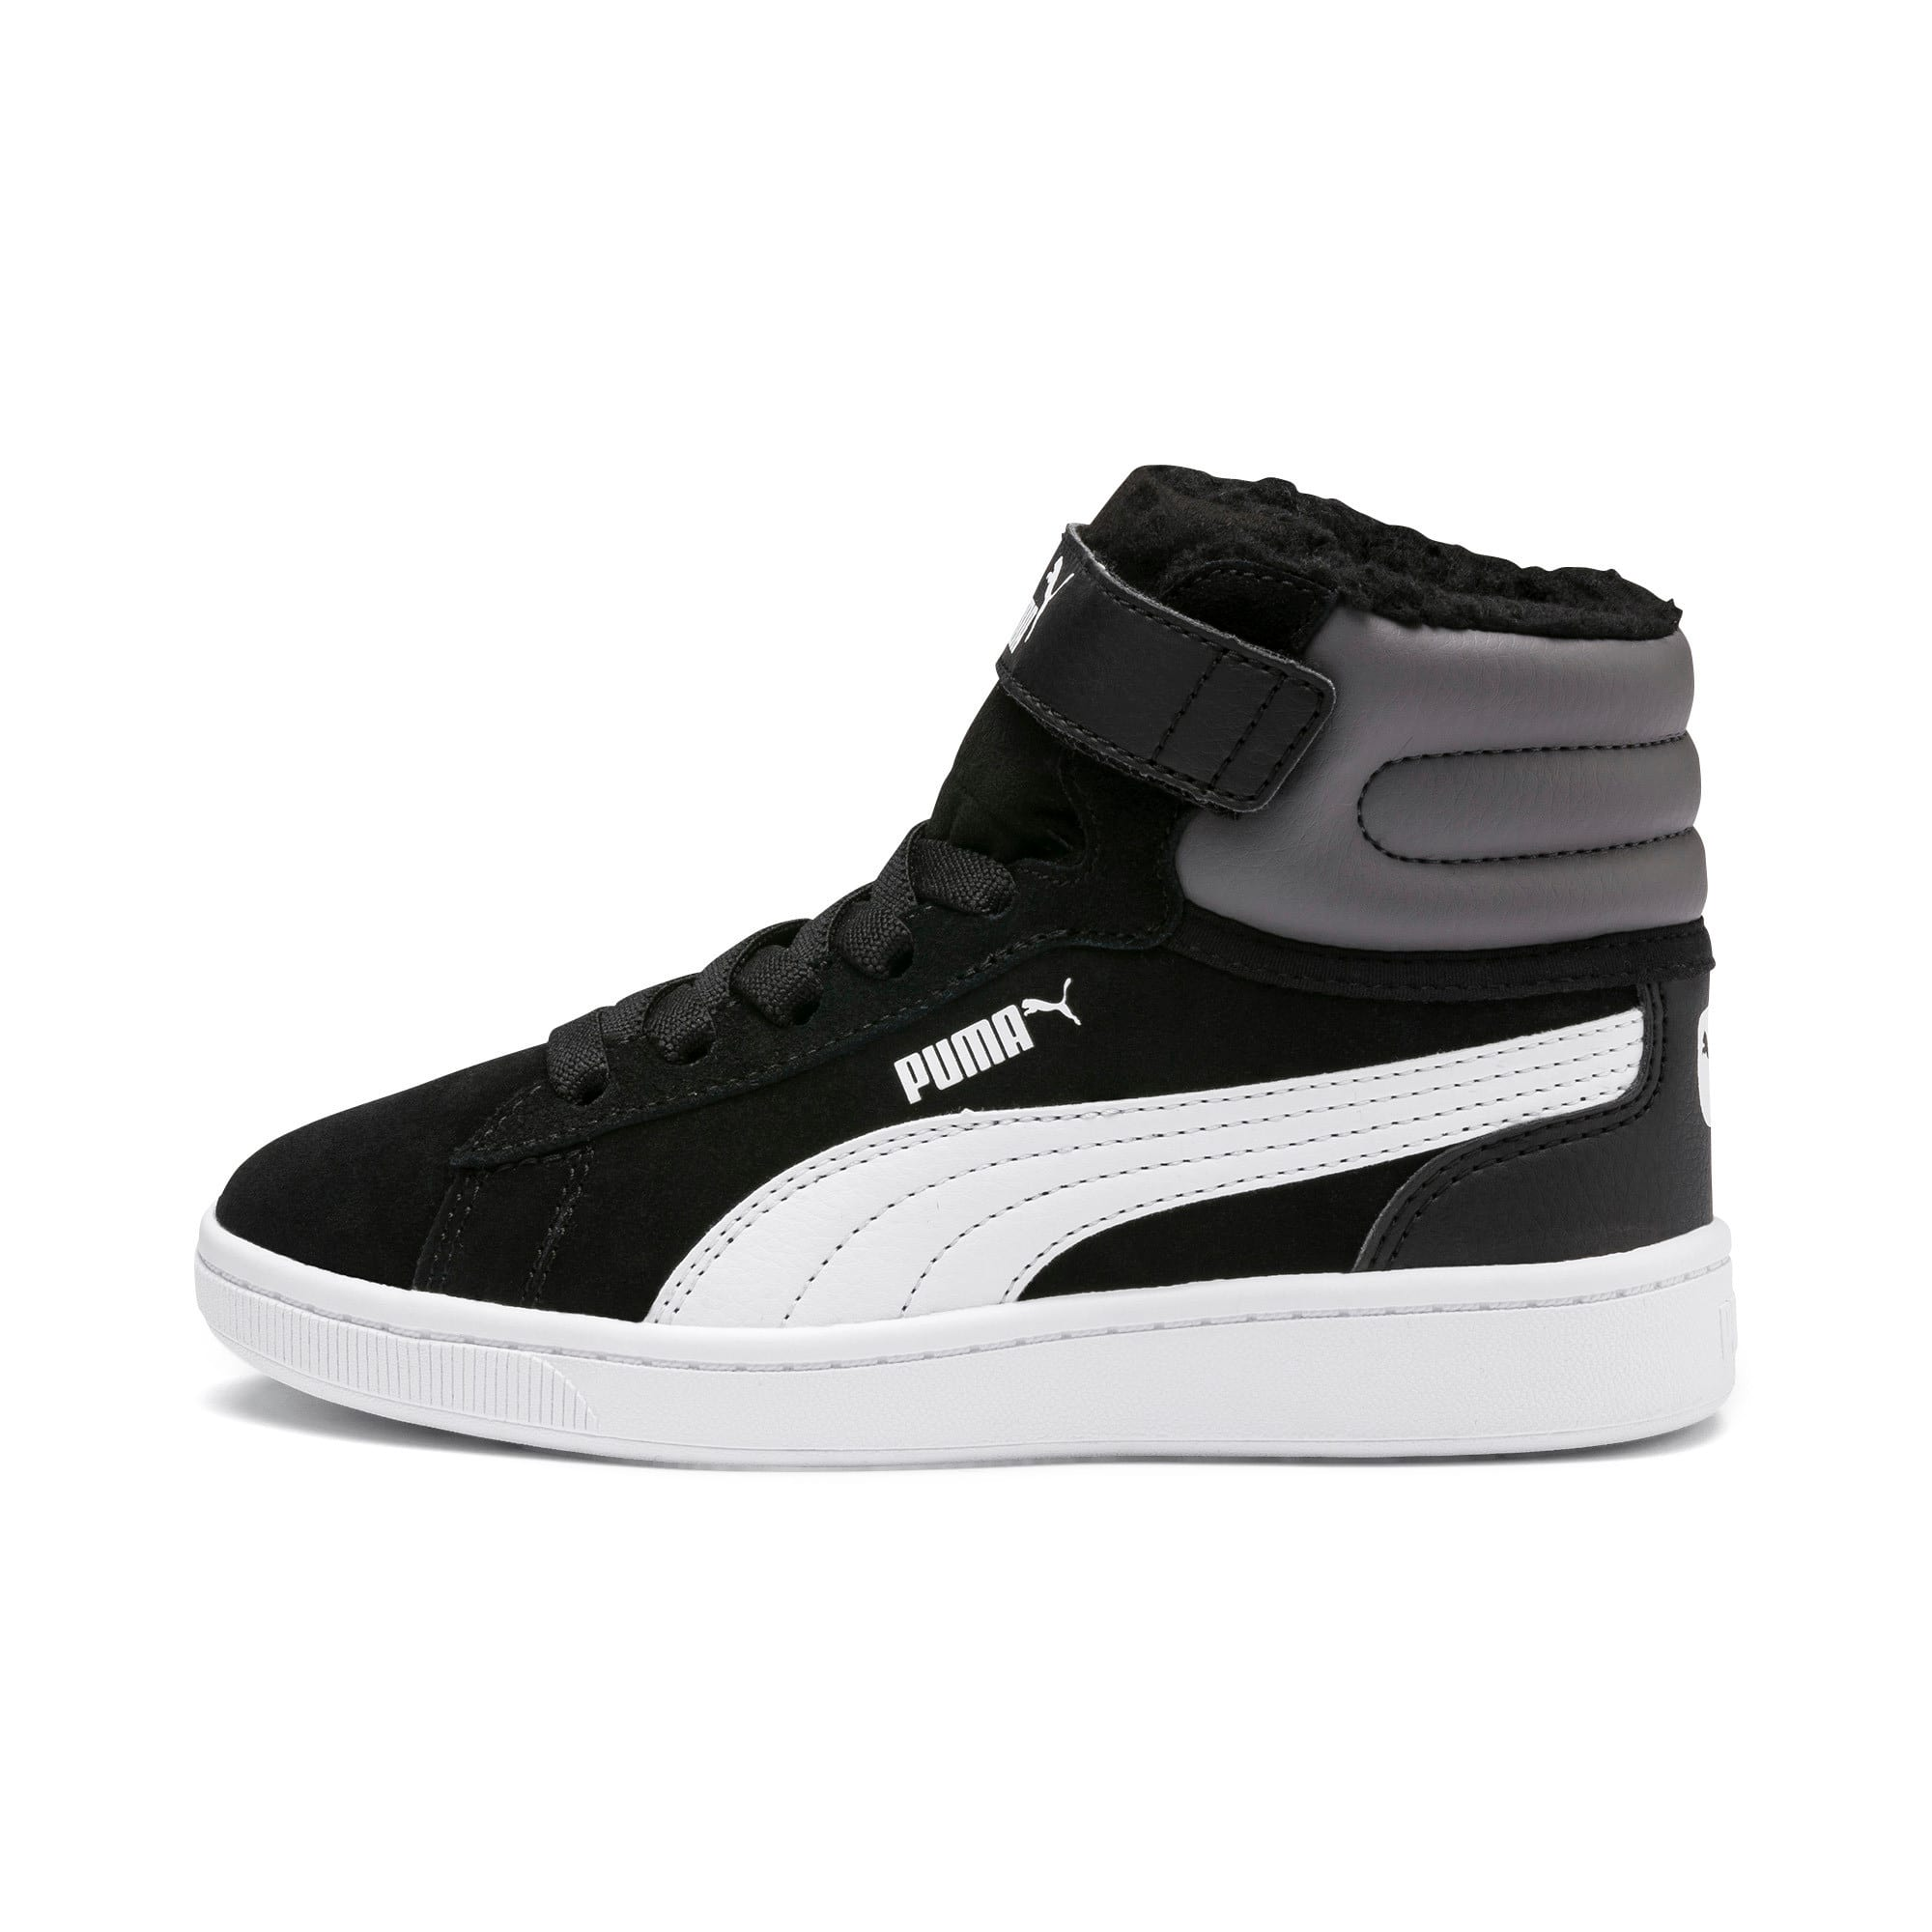 Thumbnail 1 of Vikky v2 Mid Fur V Kids' Trainers, Puma Black-CASTLEROCK-White, medium